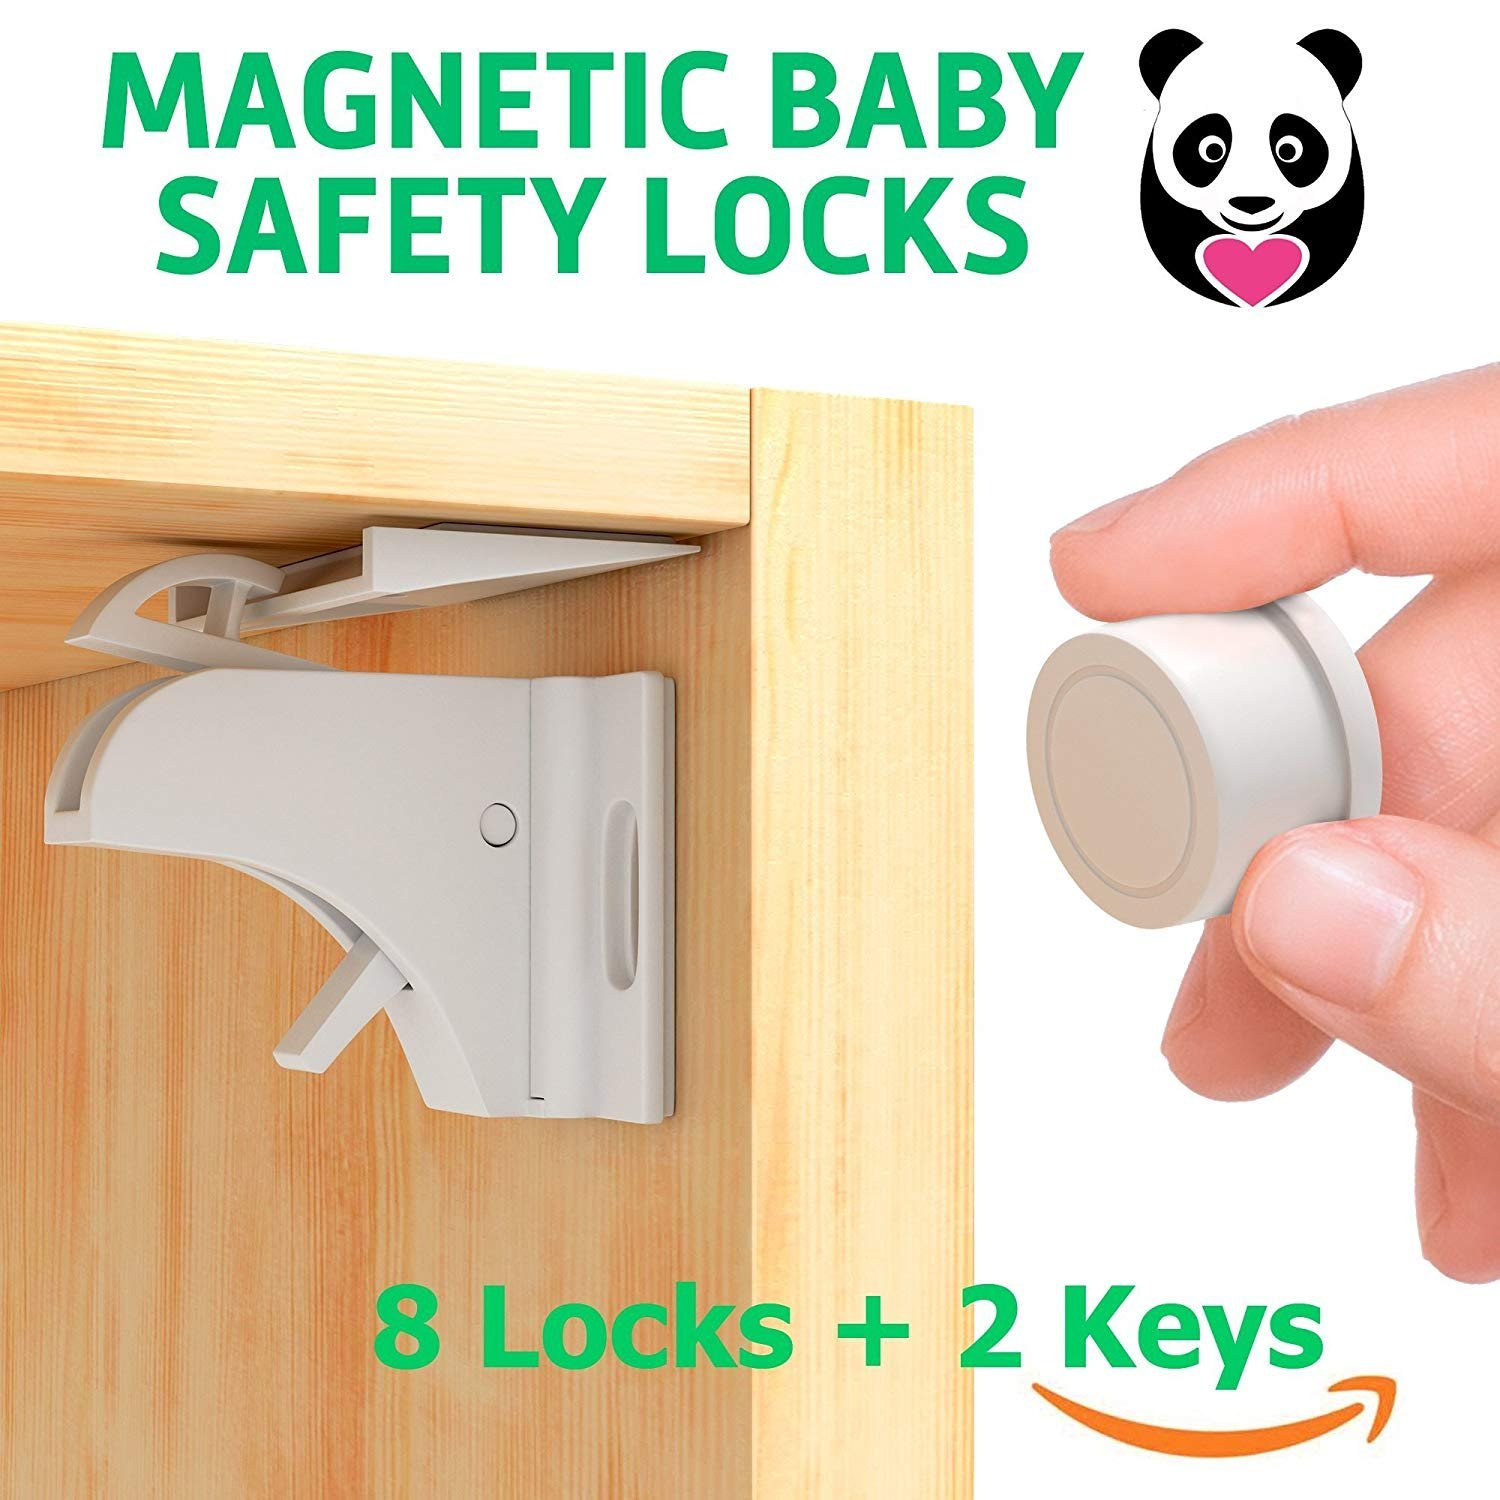 Child Safety Magnetic Cabinet Locks - Invisible Baby Proof Latch Set 8 Locks & 2 Keys Heavy Duty Locking System for Proofing Cabinets Drawers Doors Kitchen with 3M Adhesive (Tools aren't Required) by D-Panda-Safety (Image #1)